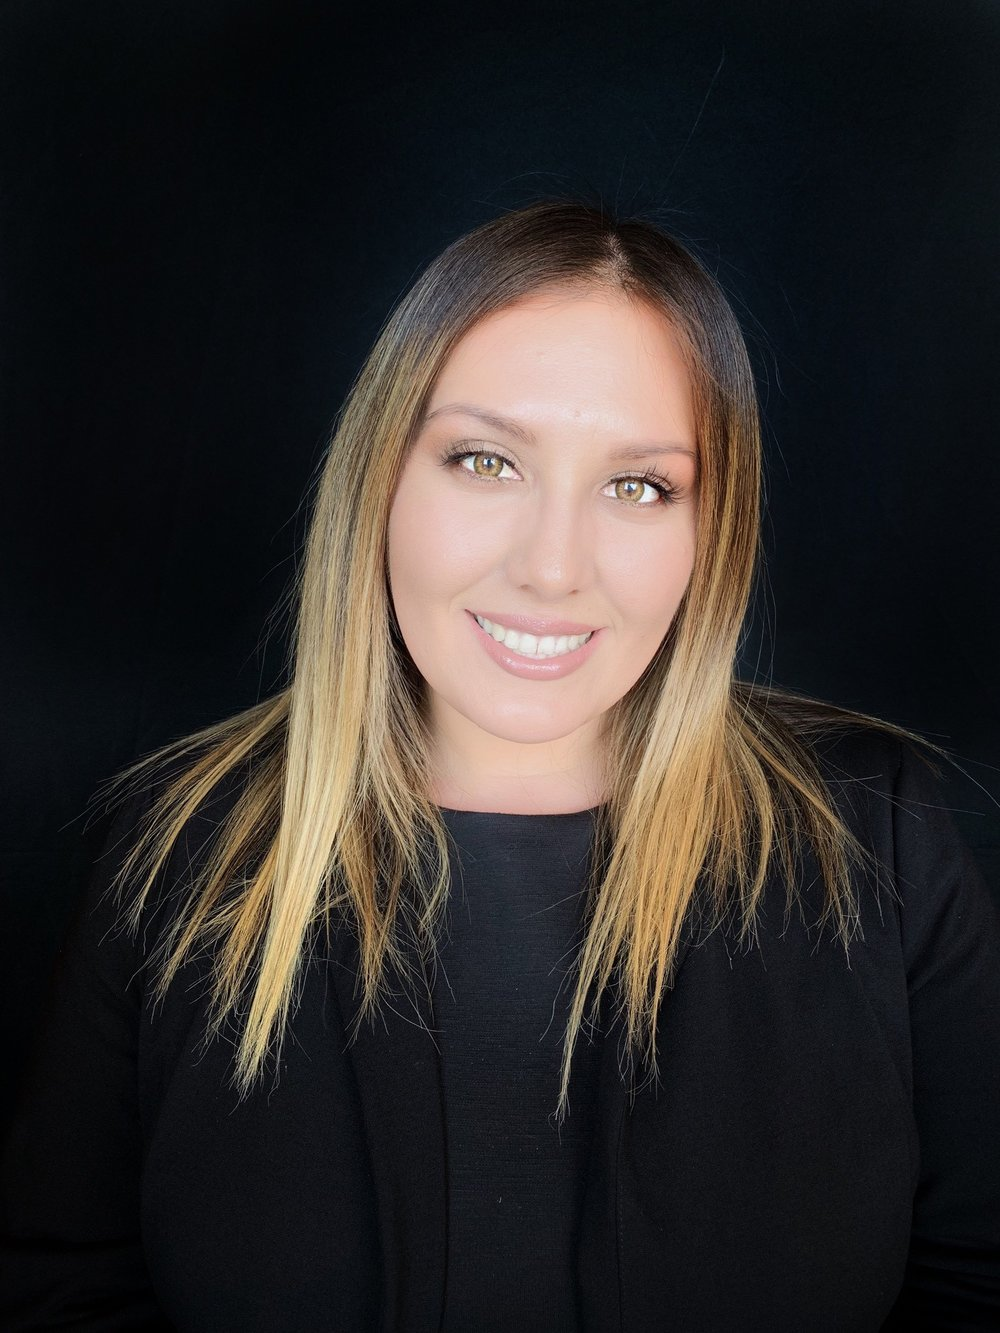 Joanna Mickelson, Account Manager